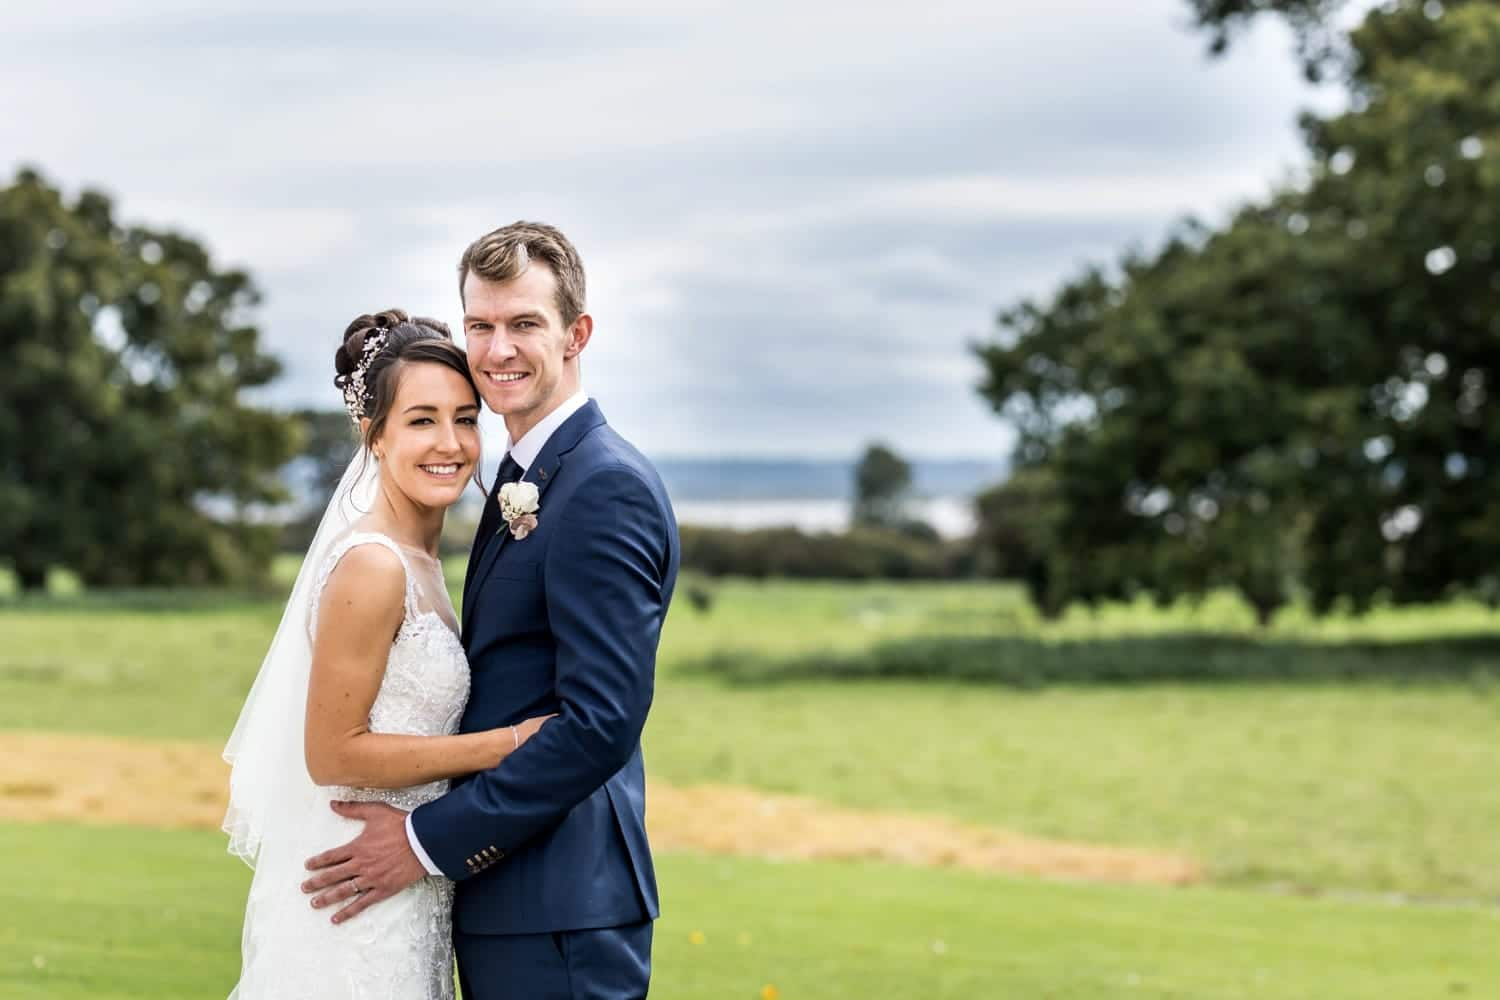 Bride and groom portraits at St Tewdrics House in South Wales